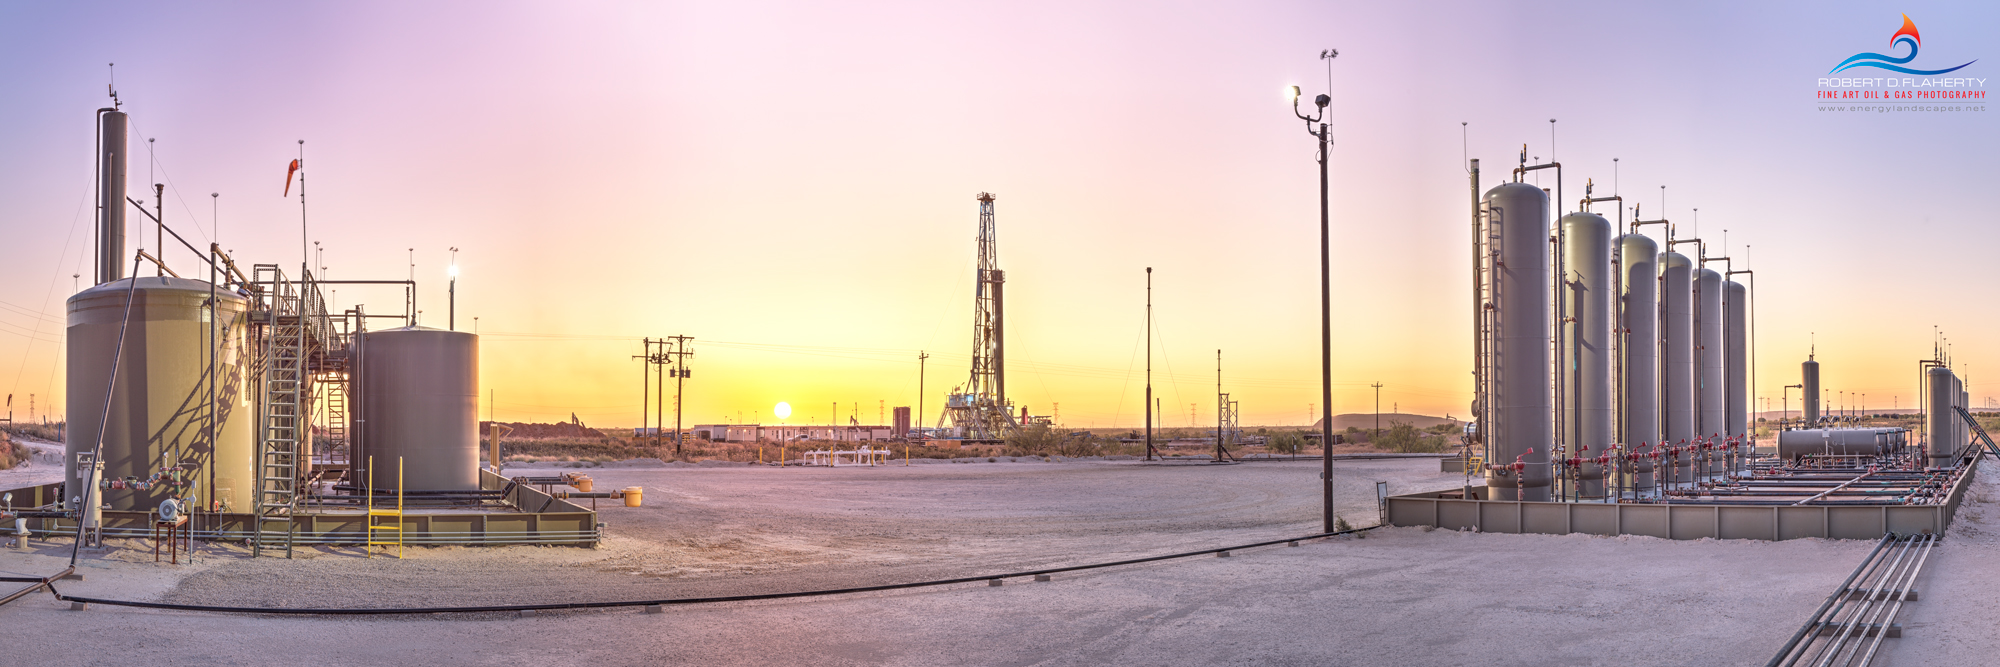 Let The Day Begin features a separator complex and battery along with Latshaw rig 11 at sunrise in the Eastern Midland Basin....